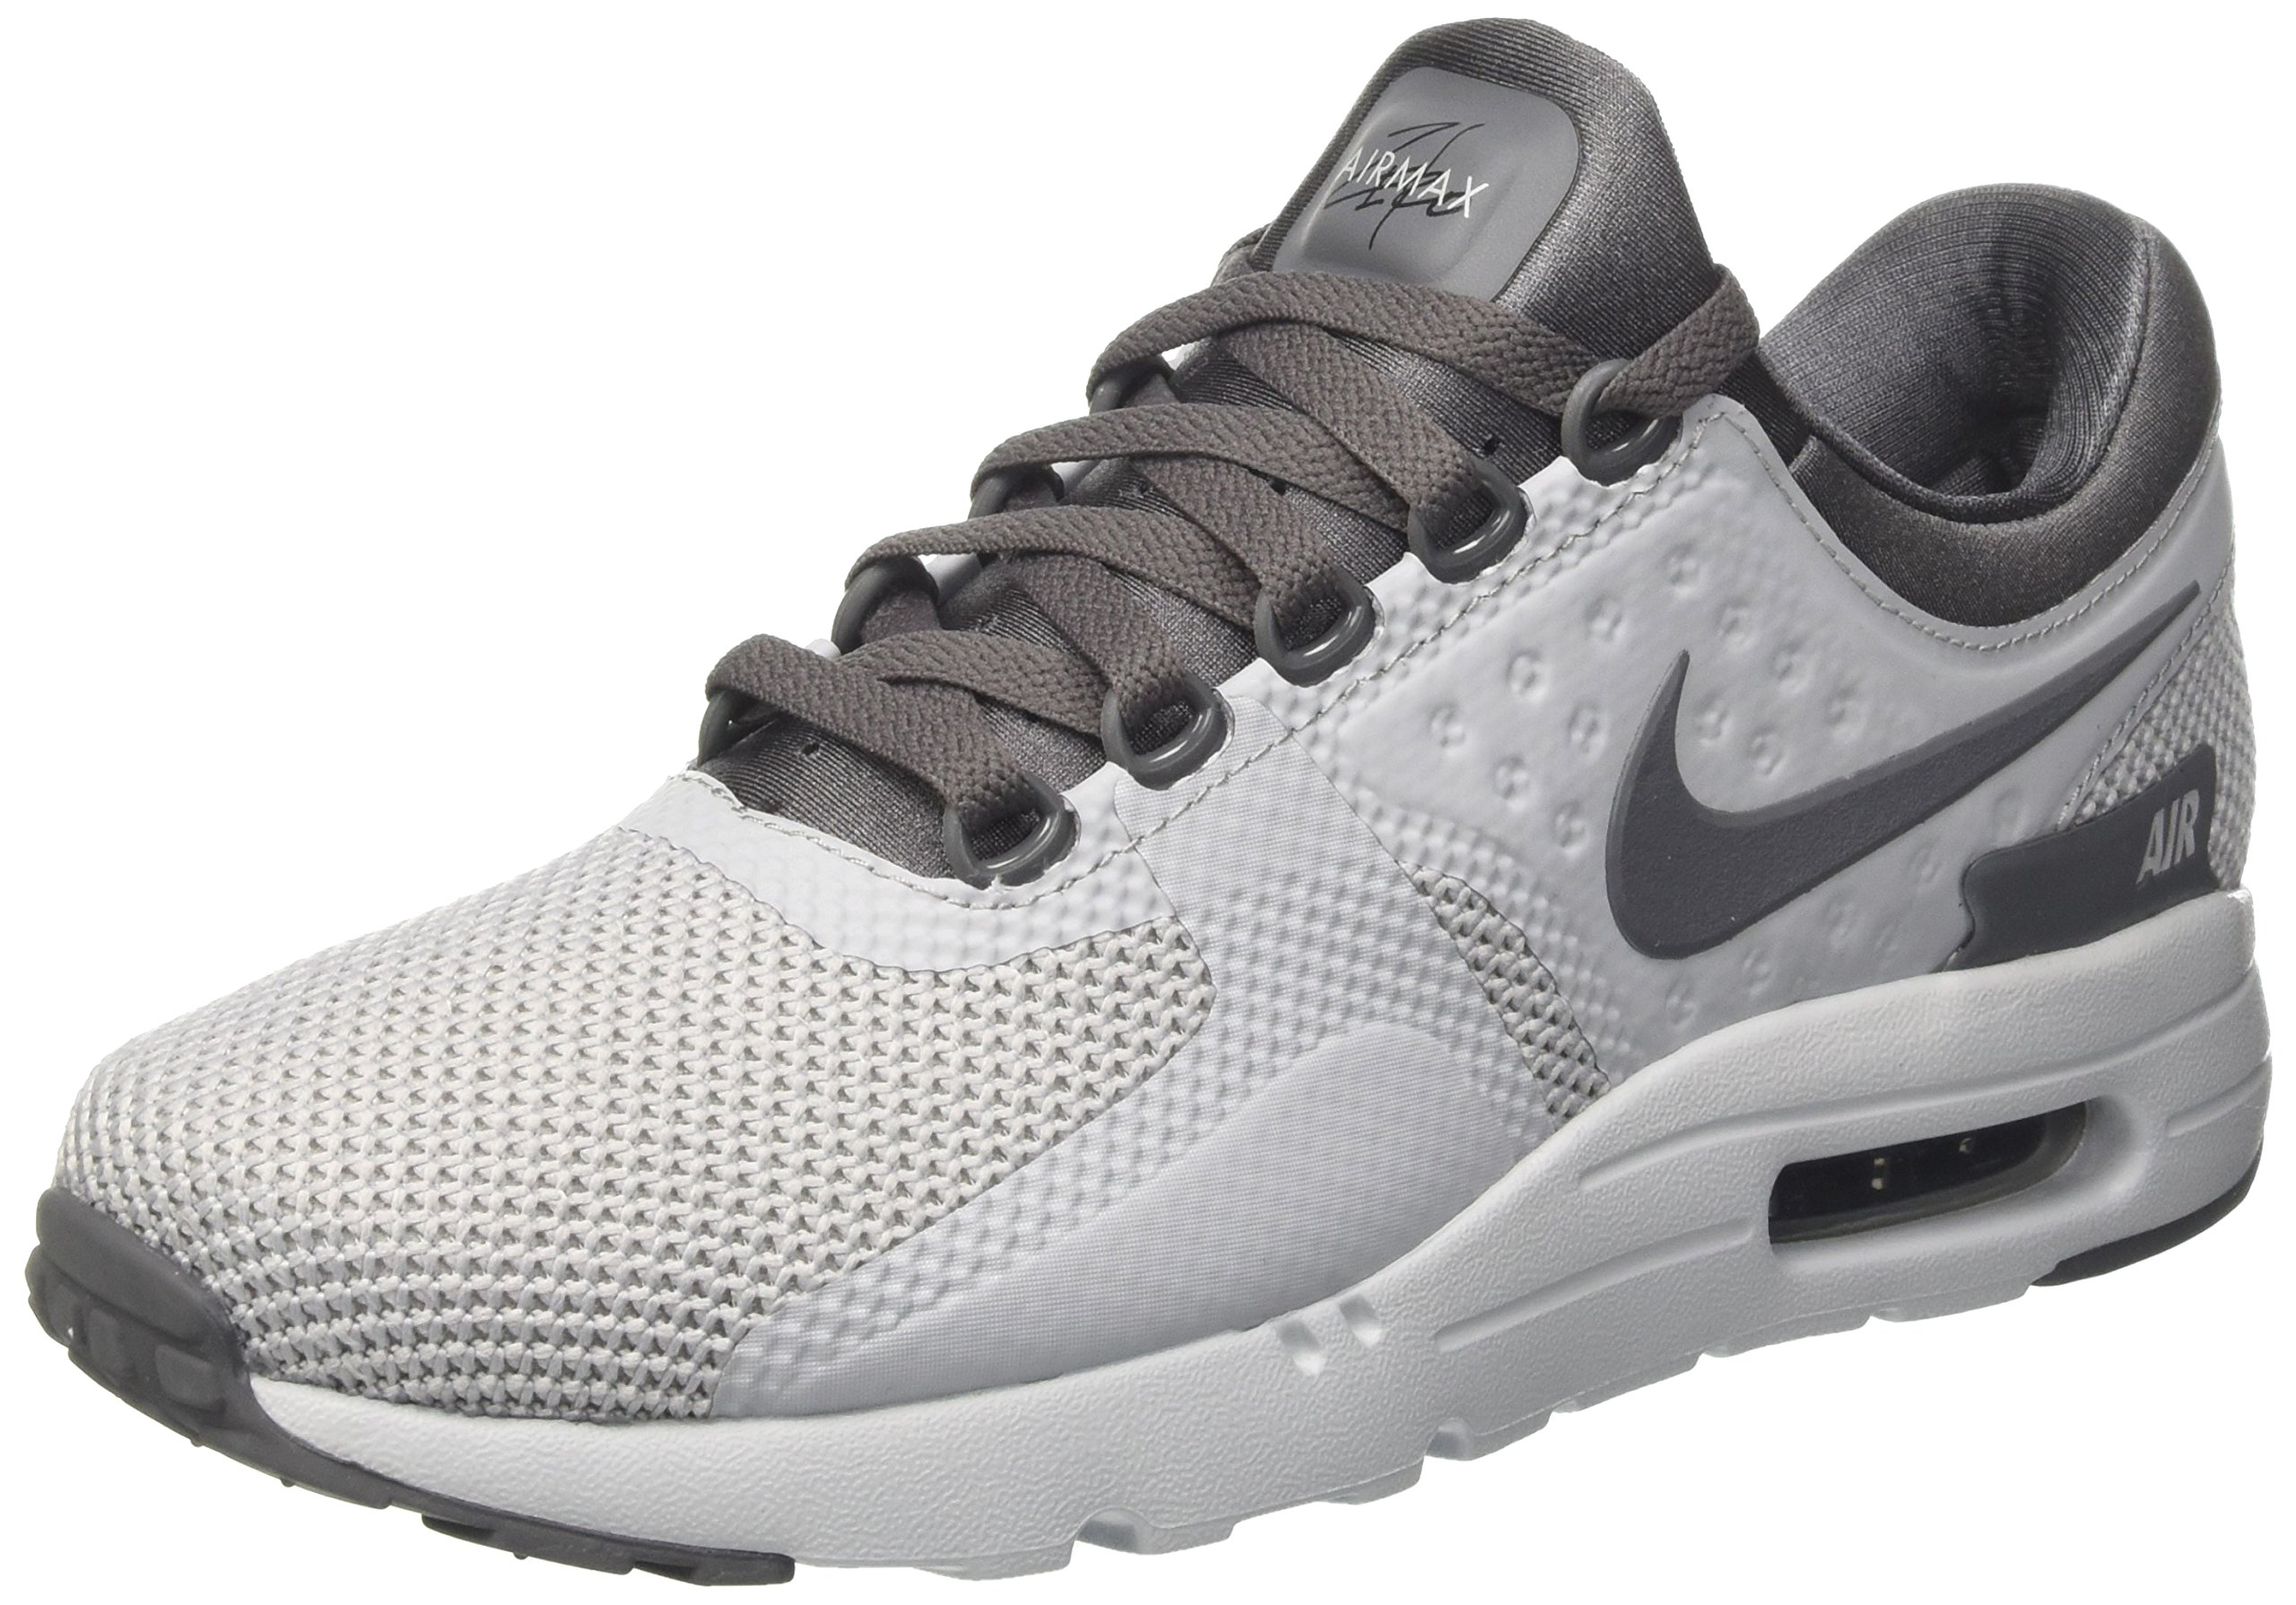 online store 47652 e4216 Galleon - Nike Air Max Zero Essential Mens Style 876070-012 Size 10 M US